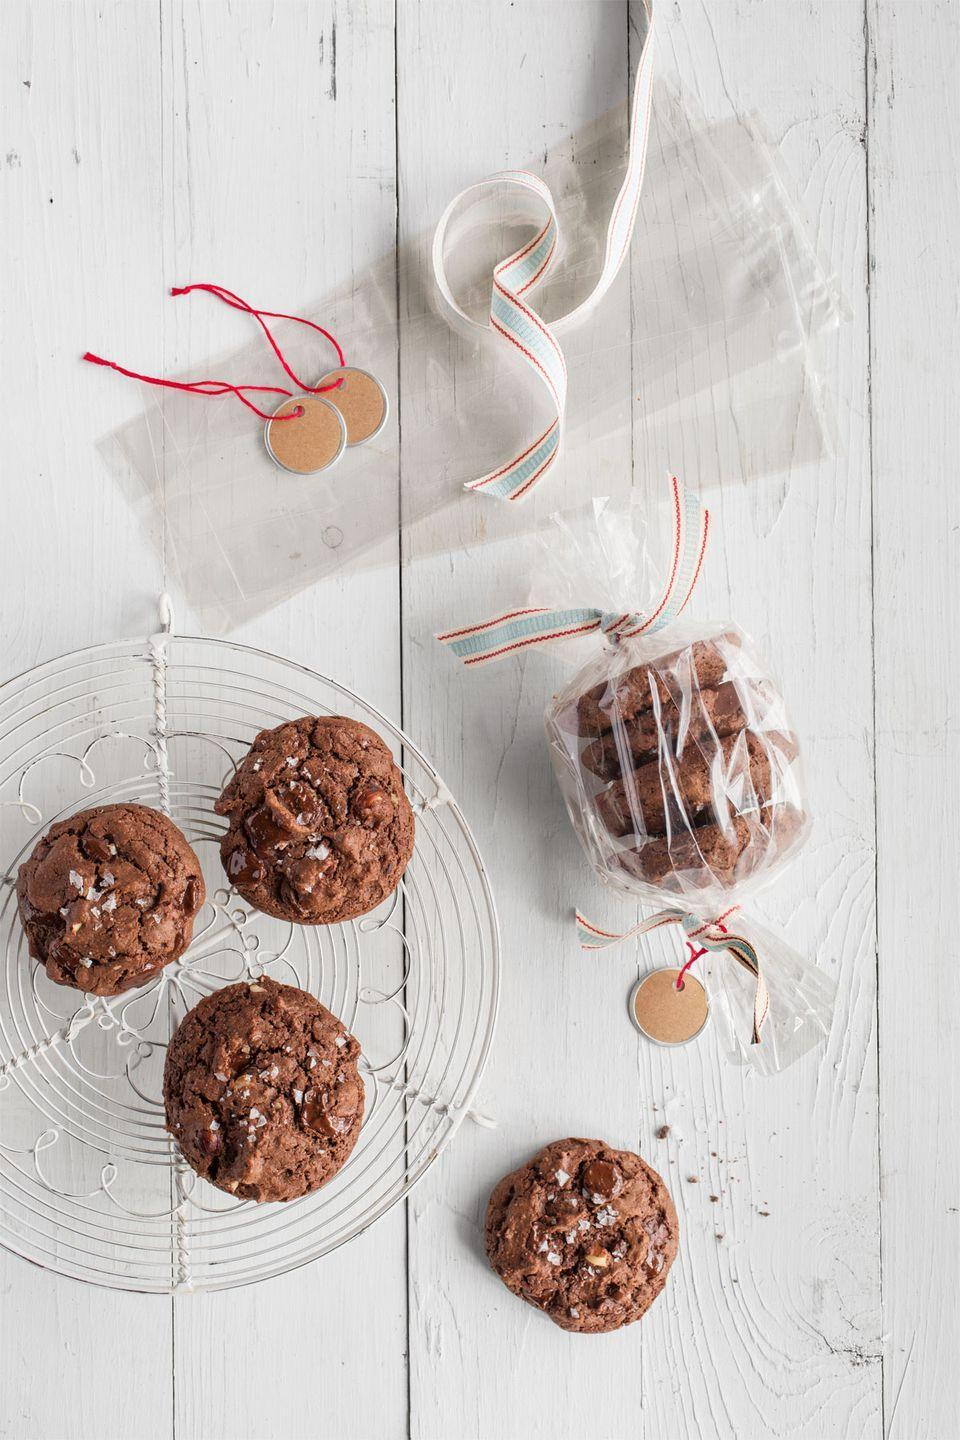 """<p>Stack four cookies in a clear plastic bag, then tie decorative ribbon at each end of the bag to cinch. Trim ends and add a metal-rim tag, and you've got yourself a festive hostess gift.</p><p><strong><a href=""""https://www.countryliving.com/food-drinks/recipes/a36896/triple-chocolate-hazelnut-cookies/"""" rel=""""nofollow noopener"""" target=""""_blank"""" data-ylk=""""slk:Get the recipe"""" class=""""link rapid-noclick-resp"""">Get the recipe</a>.</strong></p><p><a class=""""link rapid-noclick-resp"""" href=""""https://www.amazon.com/dp/B082WF6MG2/?tag=syn-yahoo-20&ascsubtag=%5Bartid%7C10050.g.647%5Bsrc%7Cyahoo-us"""" rel=""""nofollow noopener"""" target=""""_blank"""" data-ylk=""""slk:SHOP ROLLING PINS"""">SHOP ROLLING PINS</a></p>"""